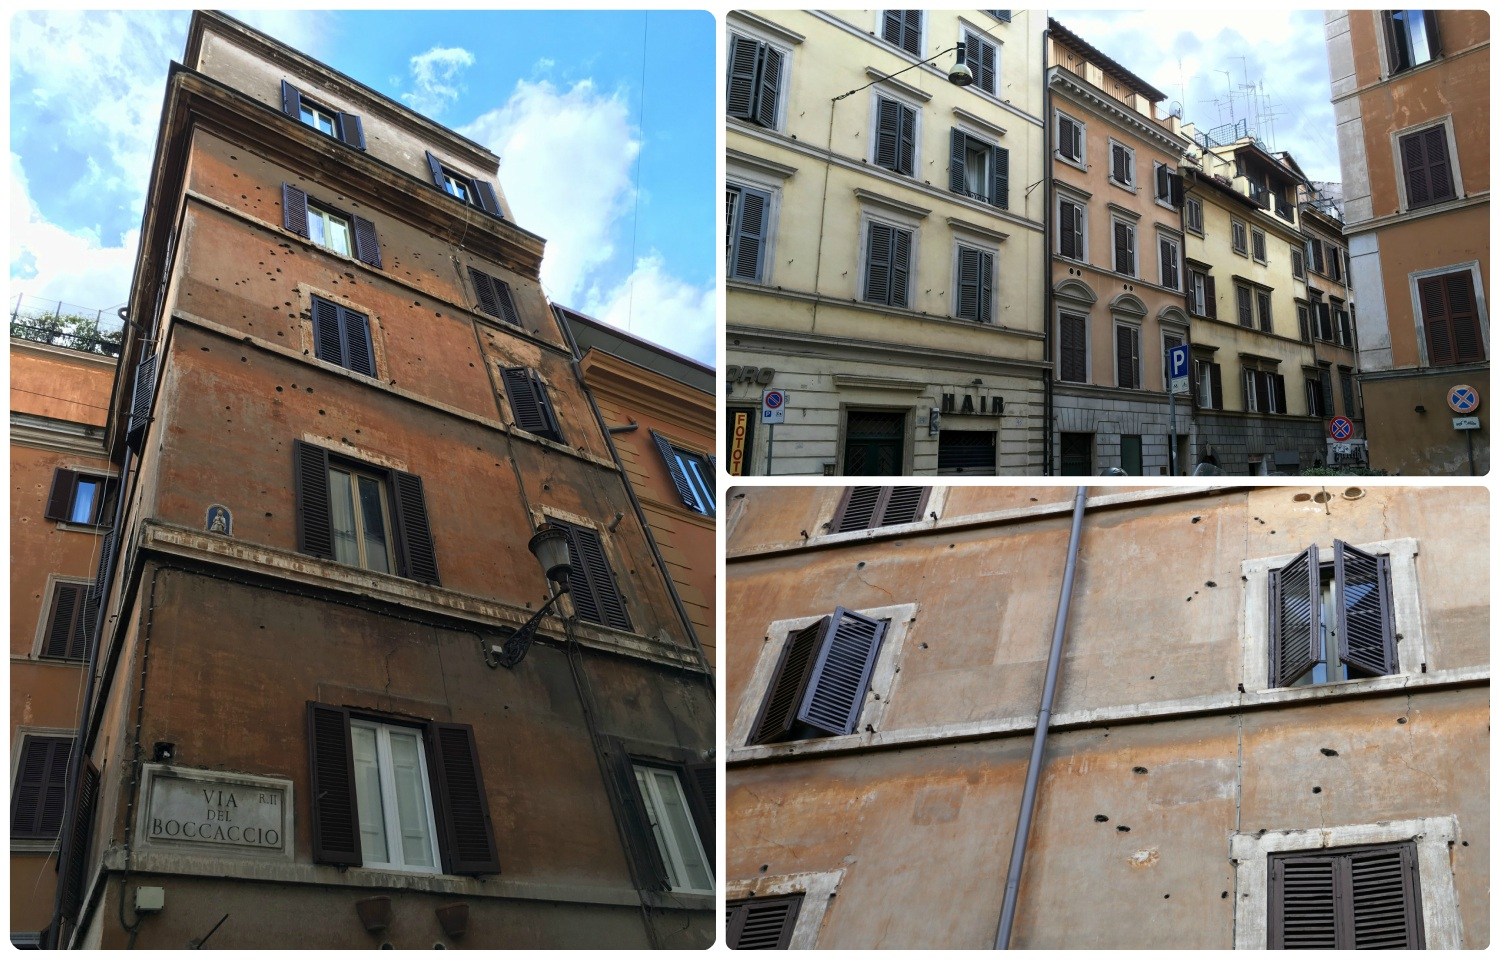 Via Rasella, Rome, Italy – Remembrance of the Massacre of the Fosse Ardeatine.